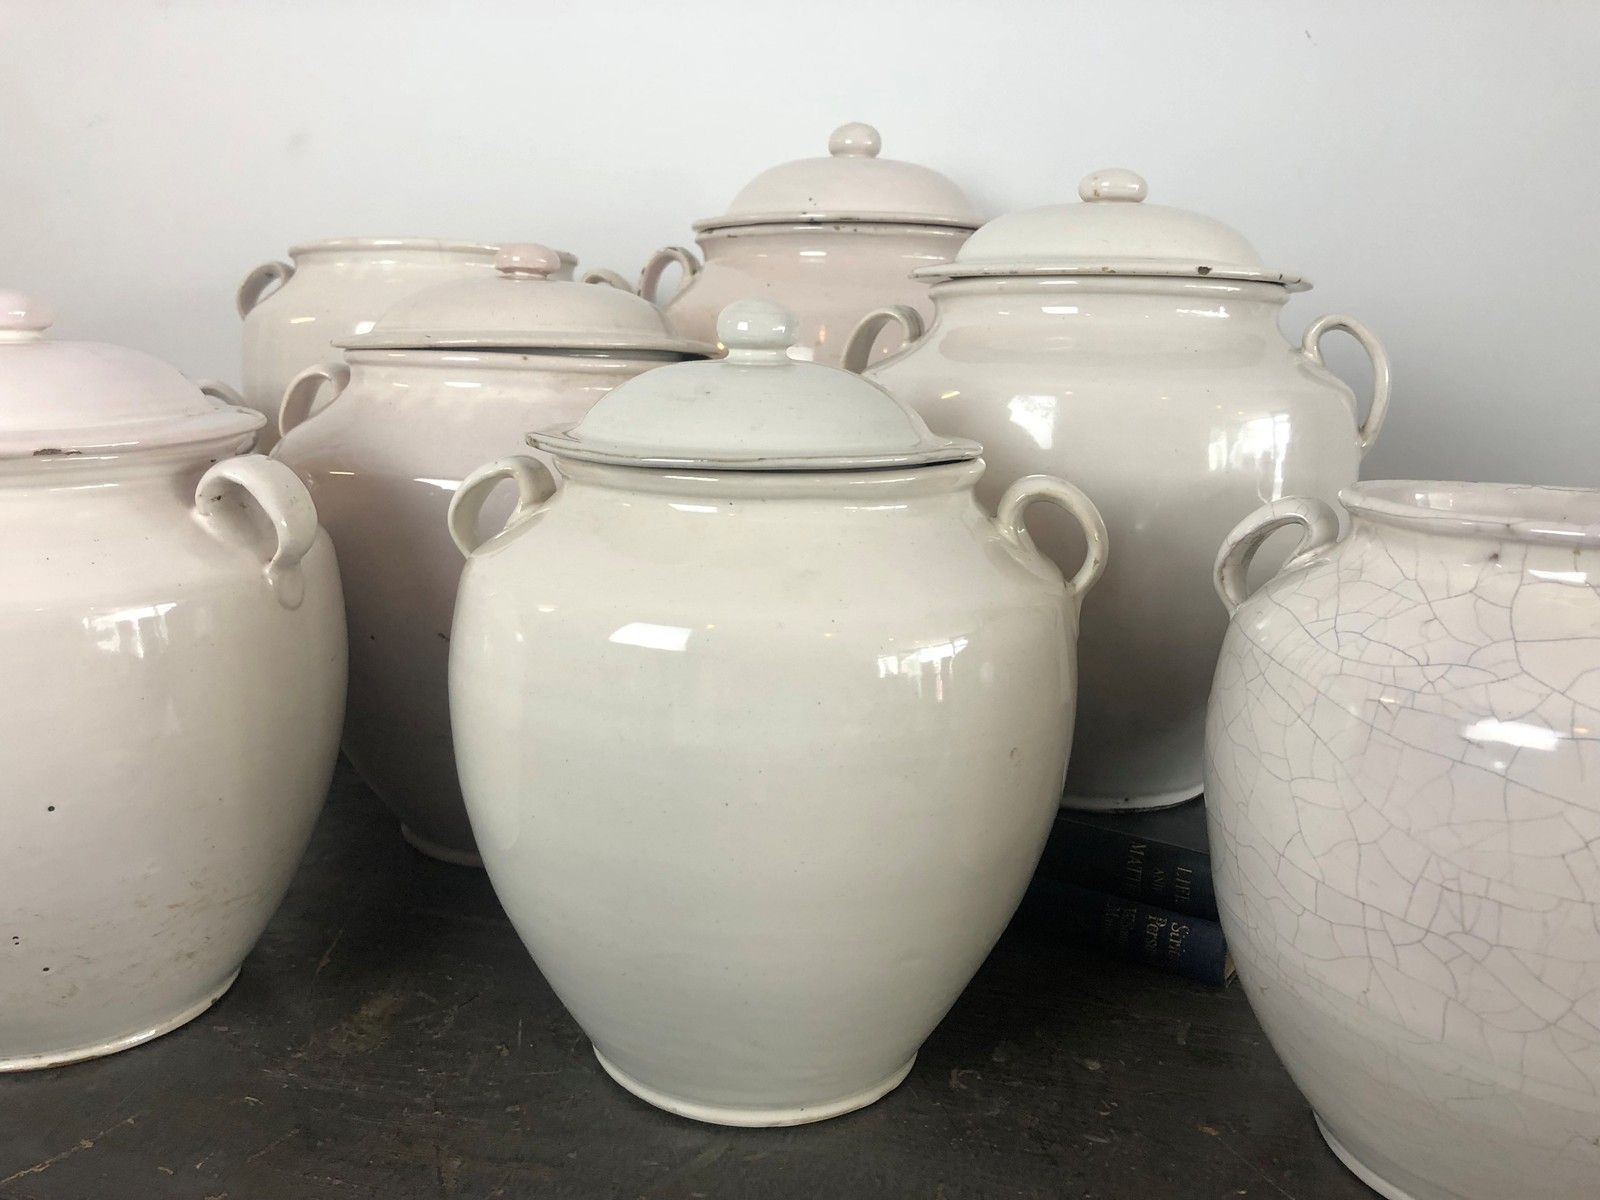 Everyone Loves A Collection Of Something As Groups Of Objects Look Great As Displays This Set Of 9 Antique Off White Confit Pots From Hv Member Franklin And Ha